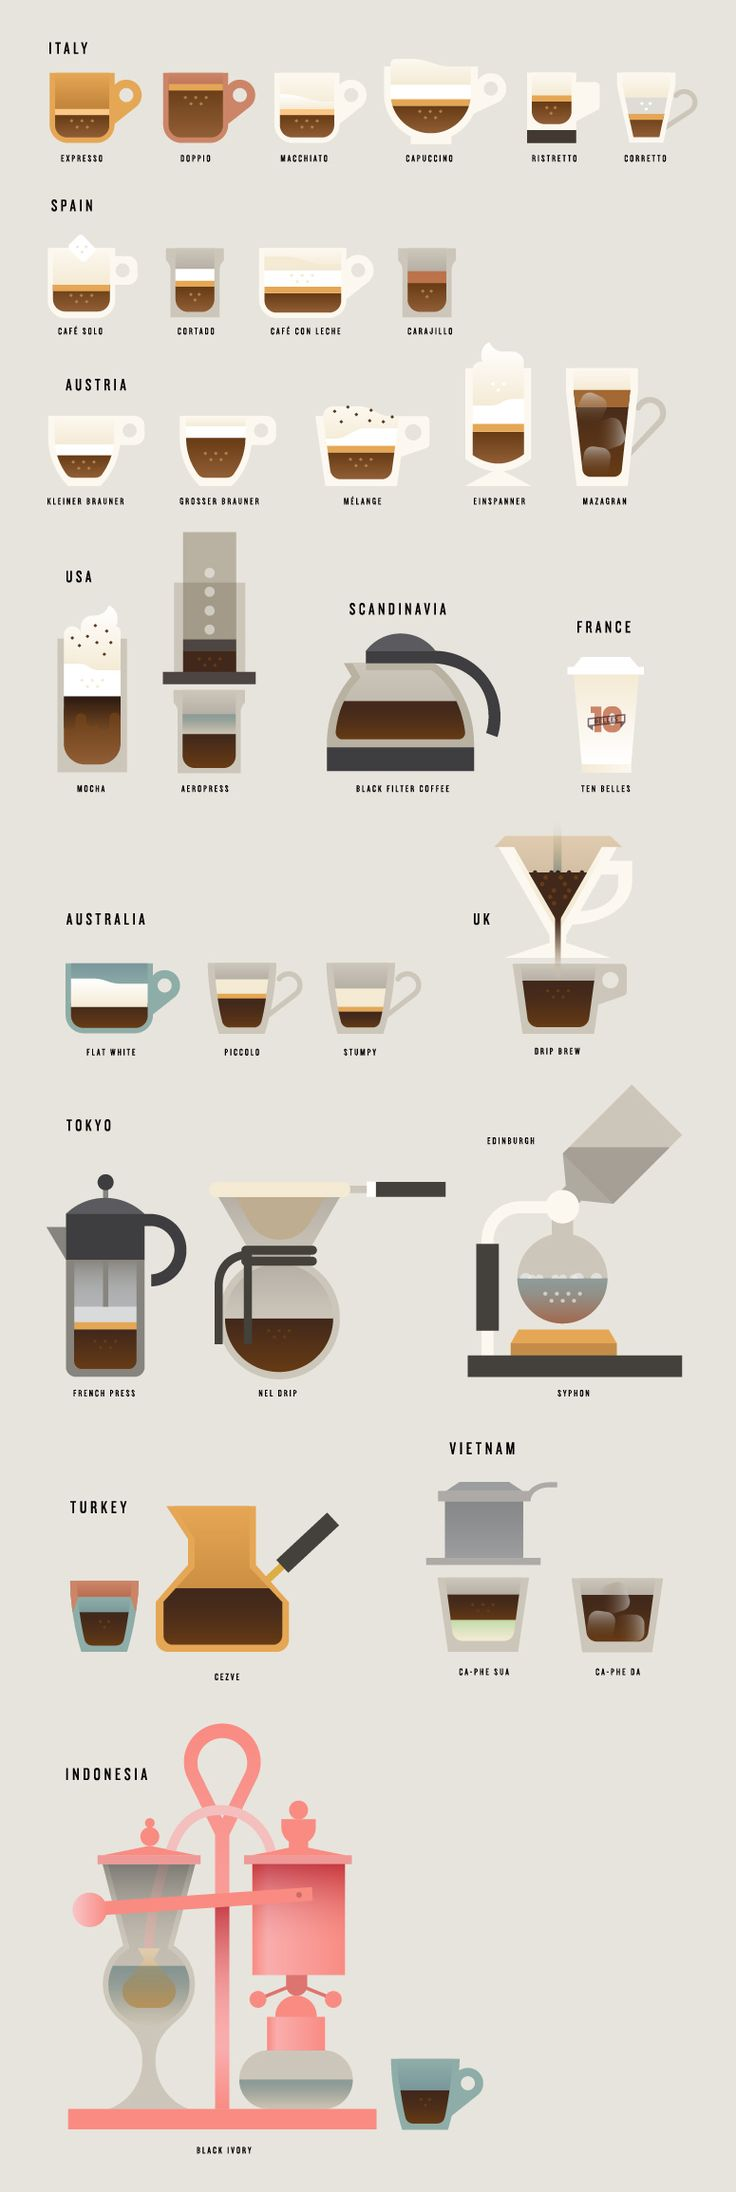 Coffee by Country